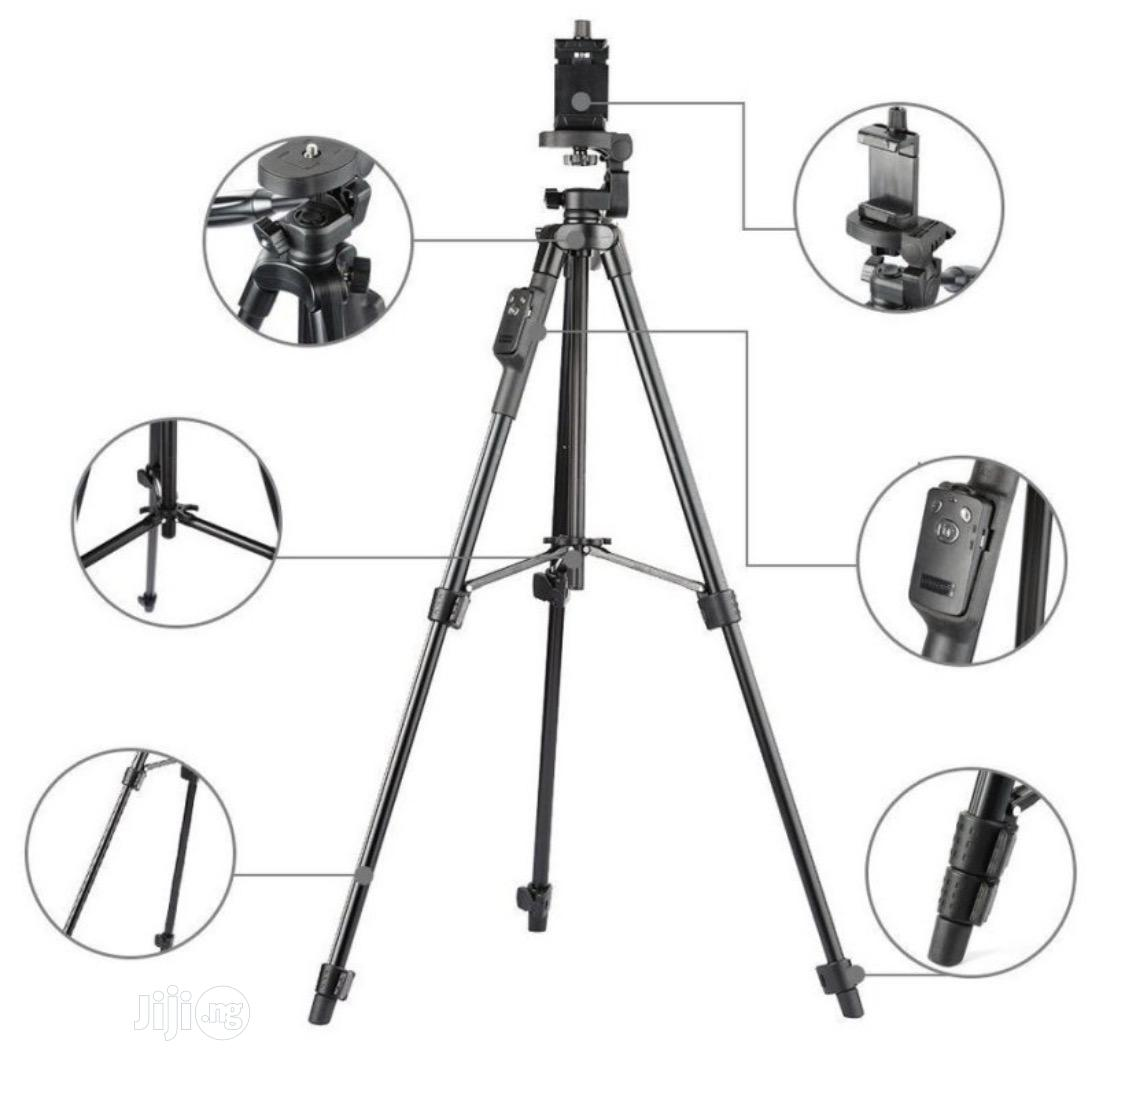 YUNGTENG VCT-5208RM Smartphones Tripod Stand With Remote Control | Accessories & Supplies for Electronics for sale in Port-Harcourt, Rivers State, Nigeria